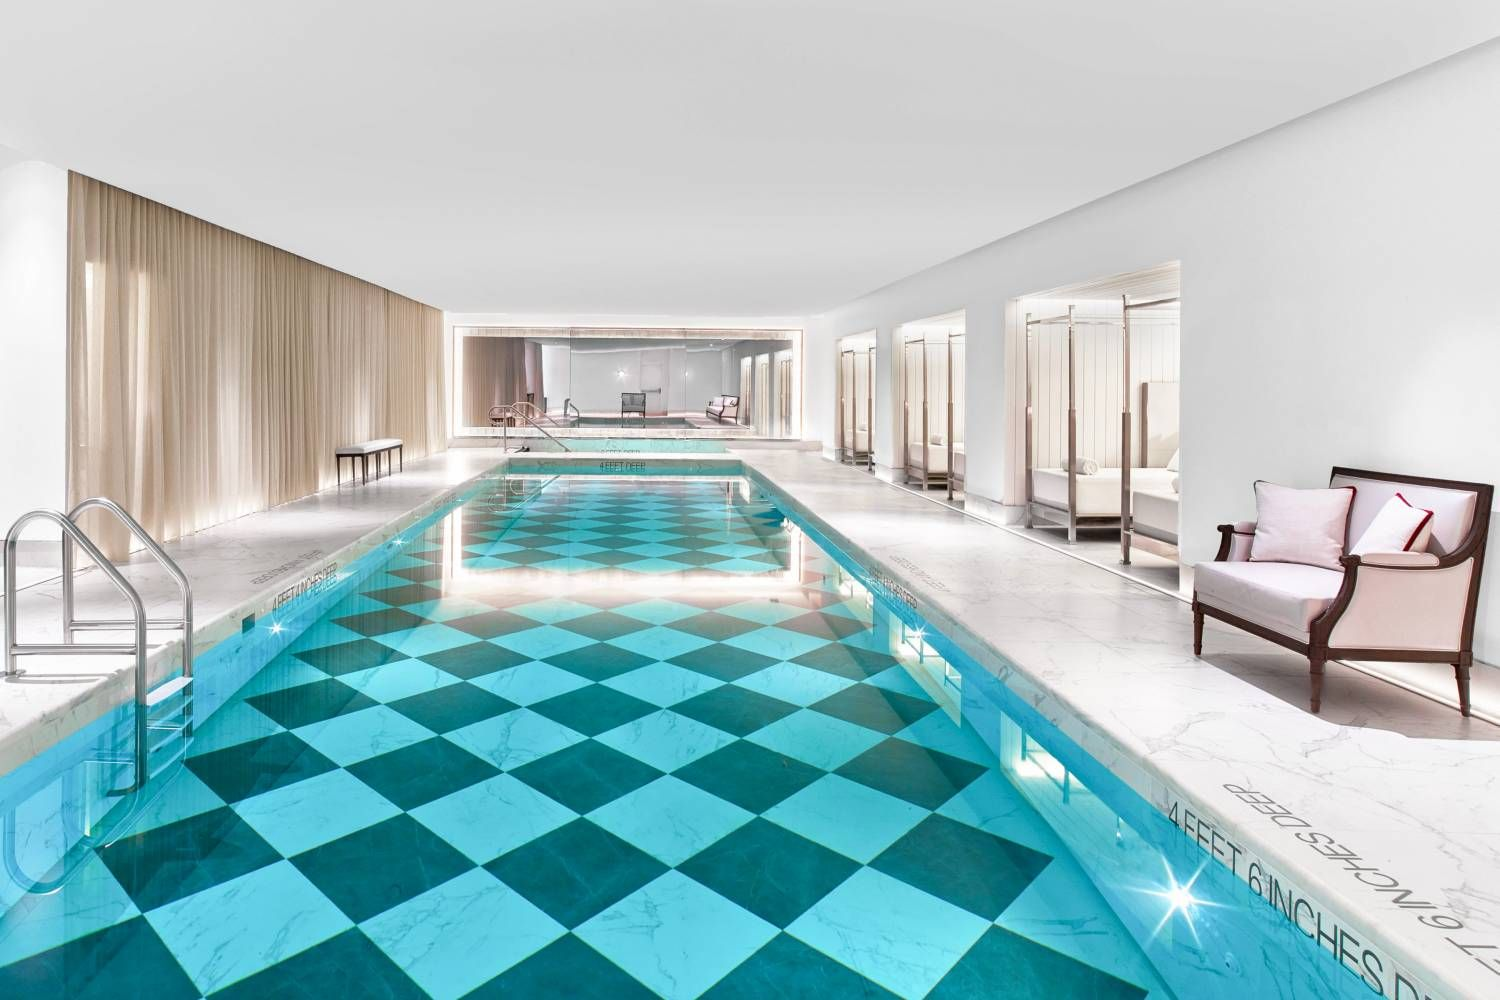 Nyc Hotels With Swimming Pools With Images Nyc Hotels Hotel